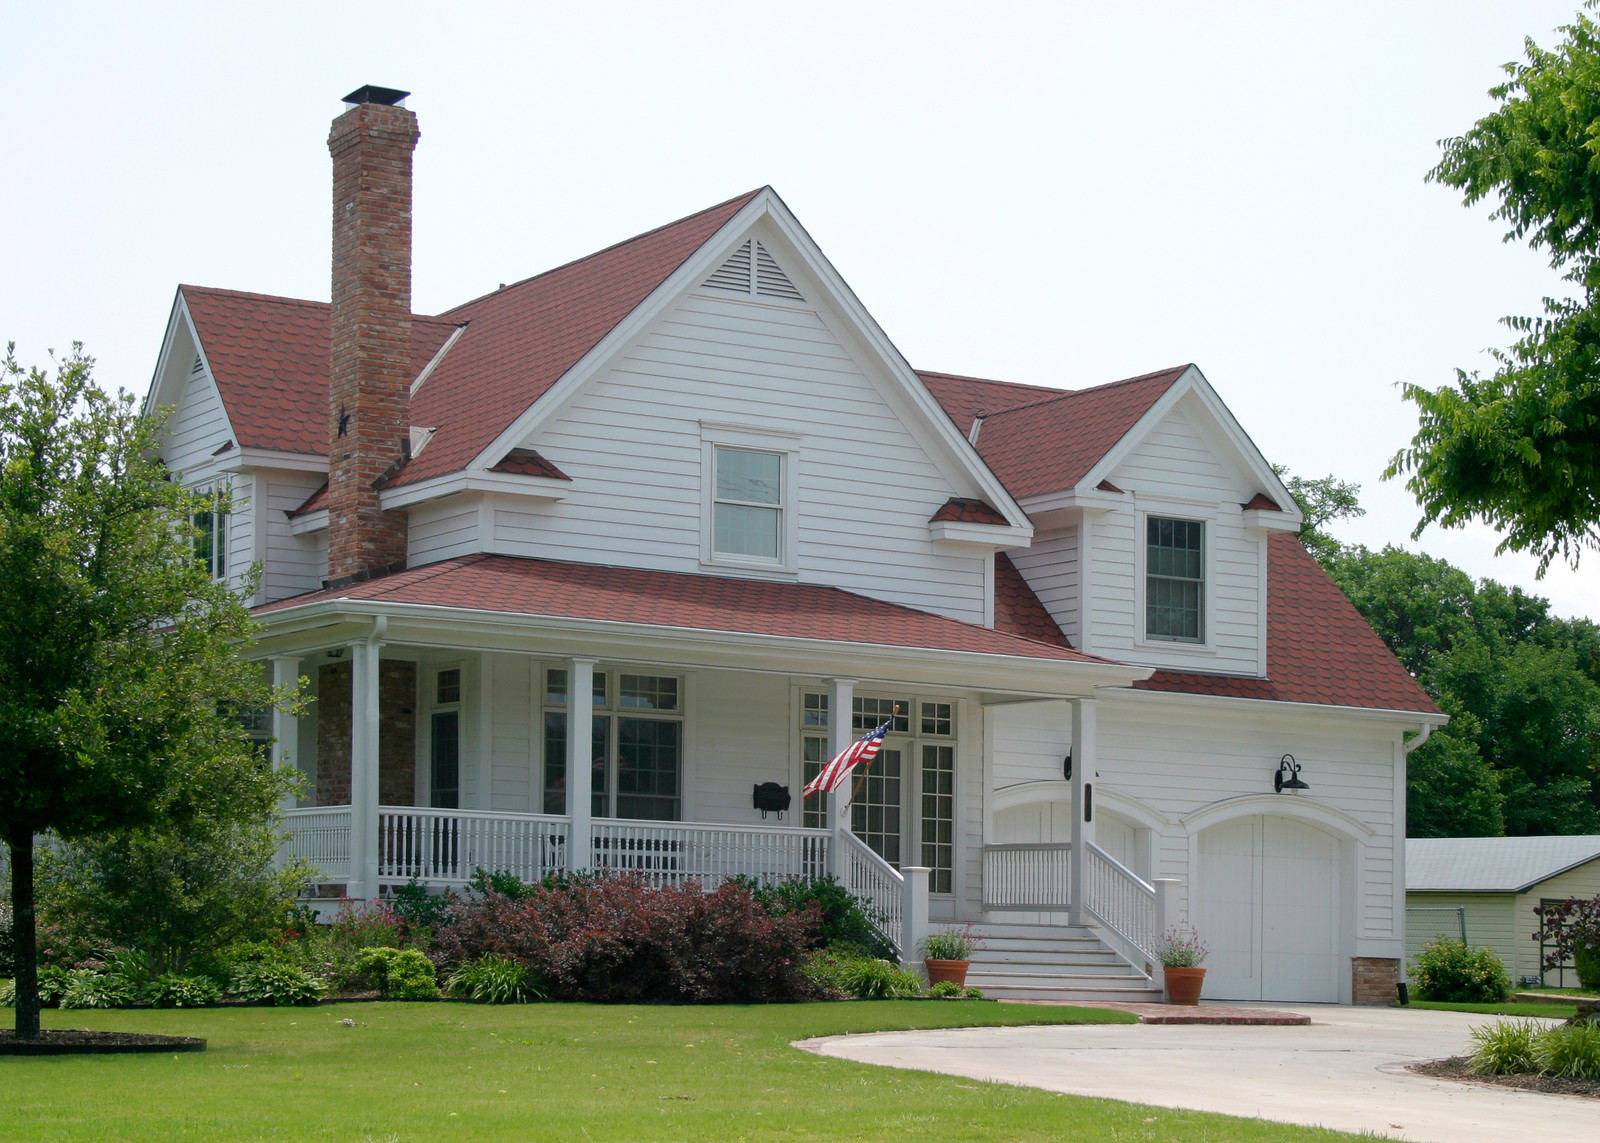 White house with dark red shingles and brick chimney. Large wrap around front porch and green lawn with shrubs and trees